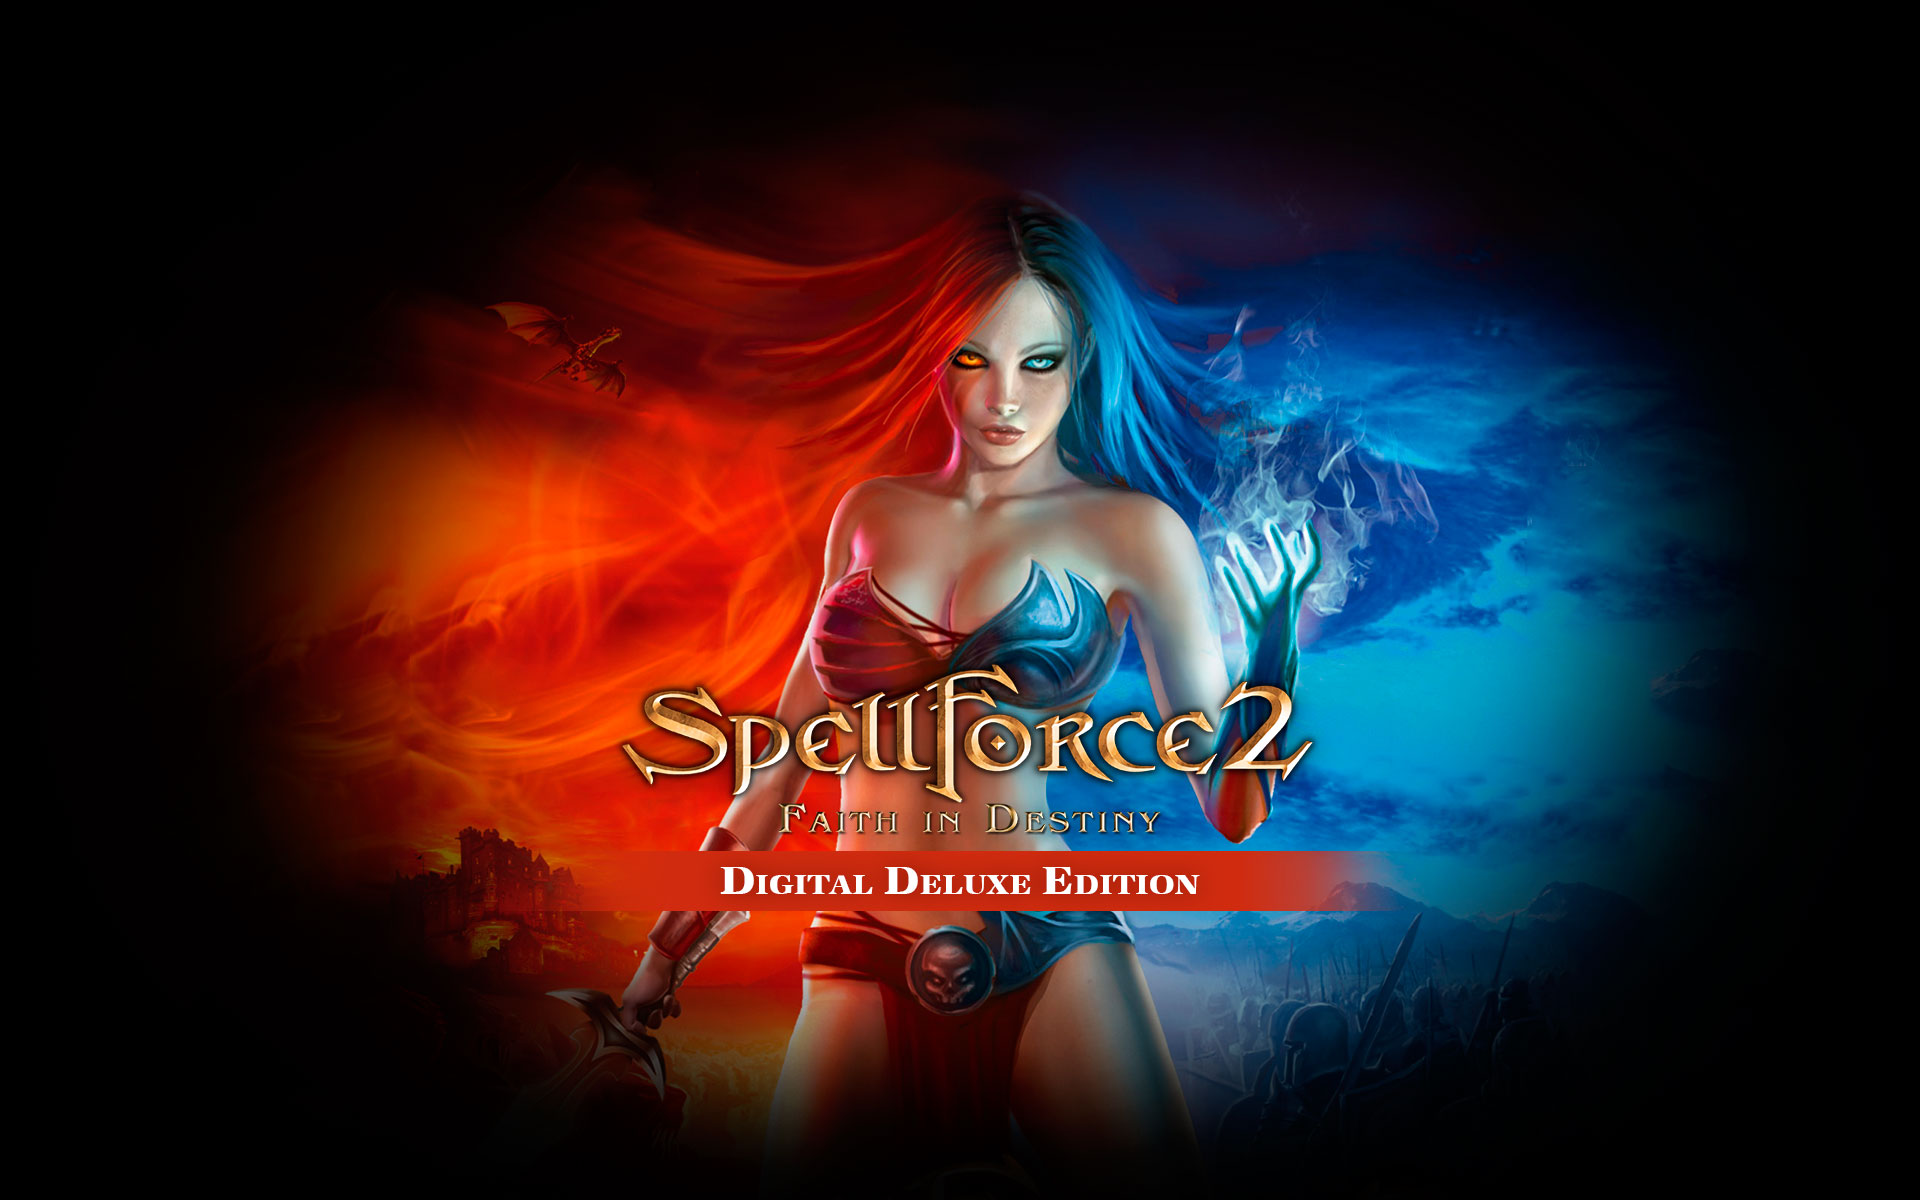 SpellForce 2: Faith in Destiny - Digital Deluxe Edition